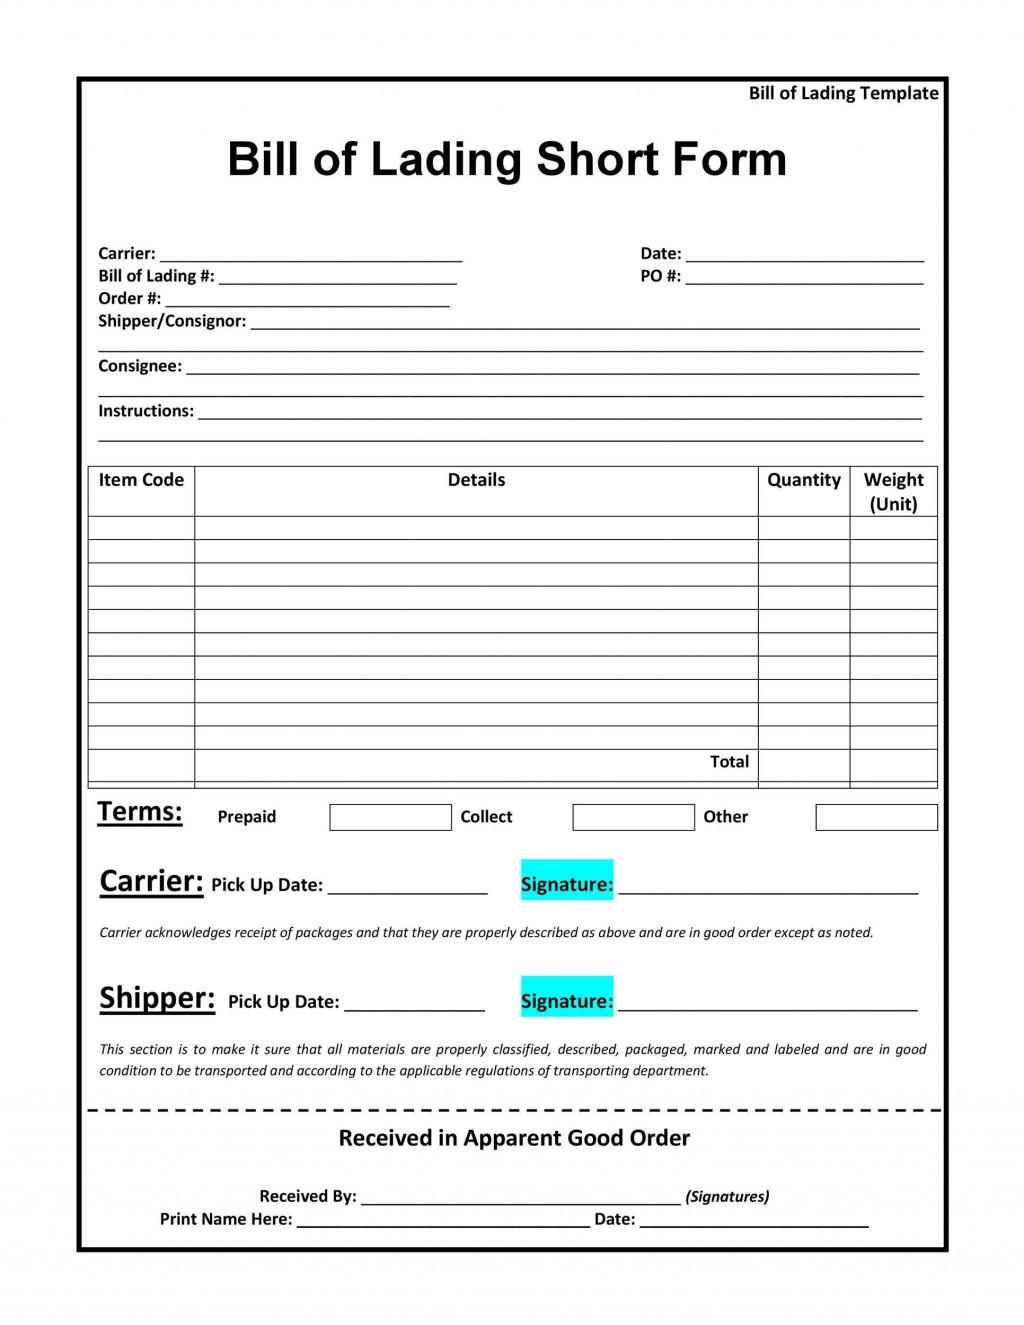 001 Simple Bill Of Lading Template Word 2003 Photo Large